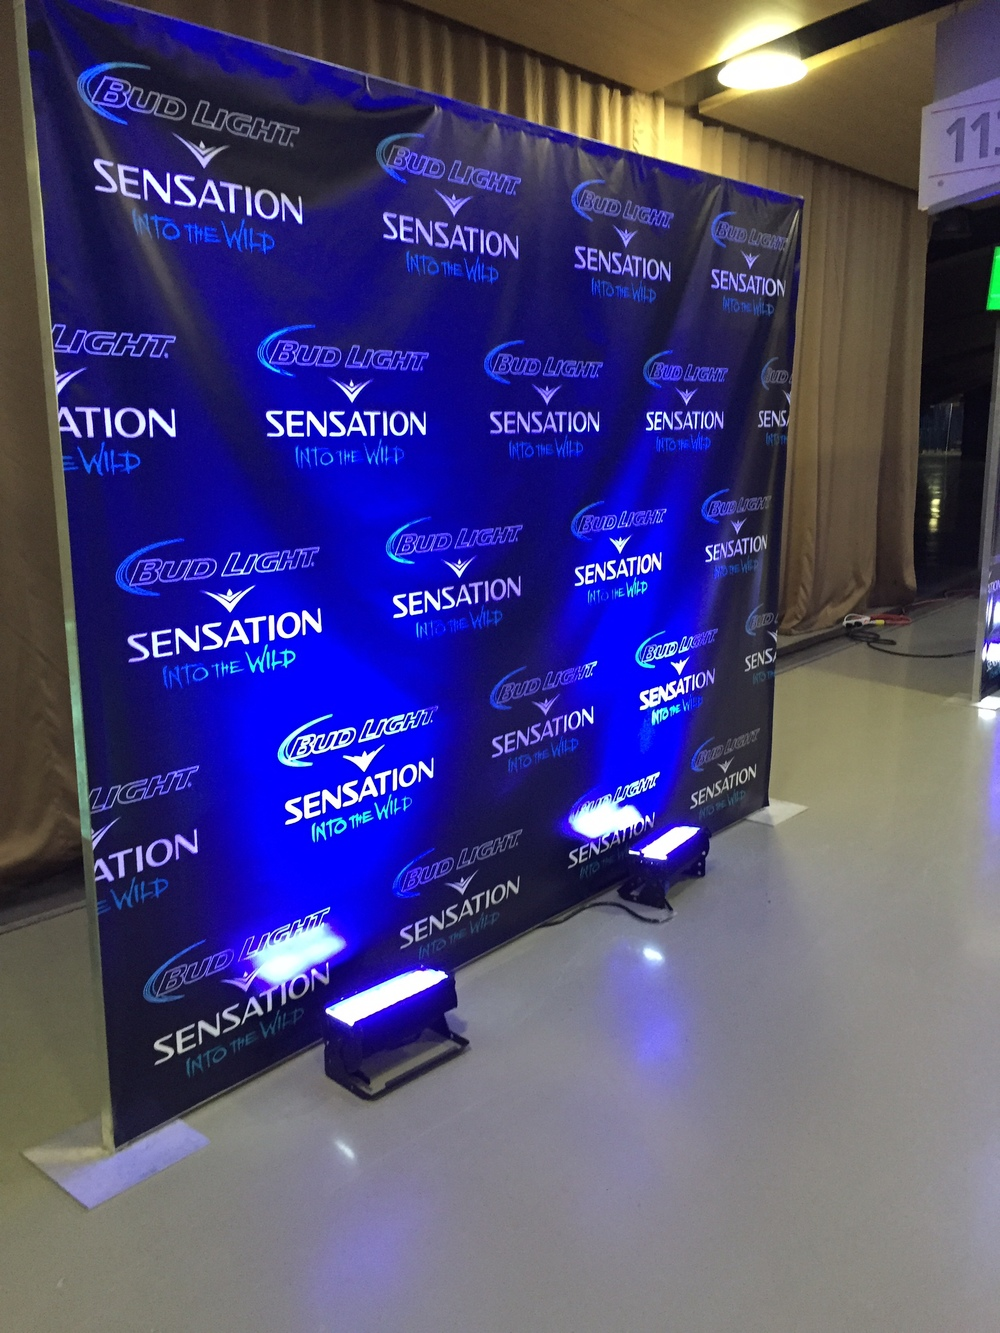 Scrim banner backdrops - Bud Light Sensation: Into the Wild 2014